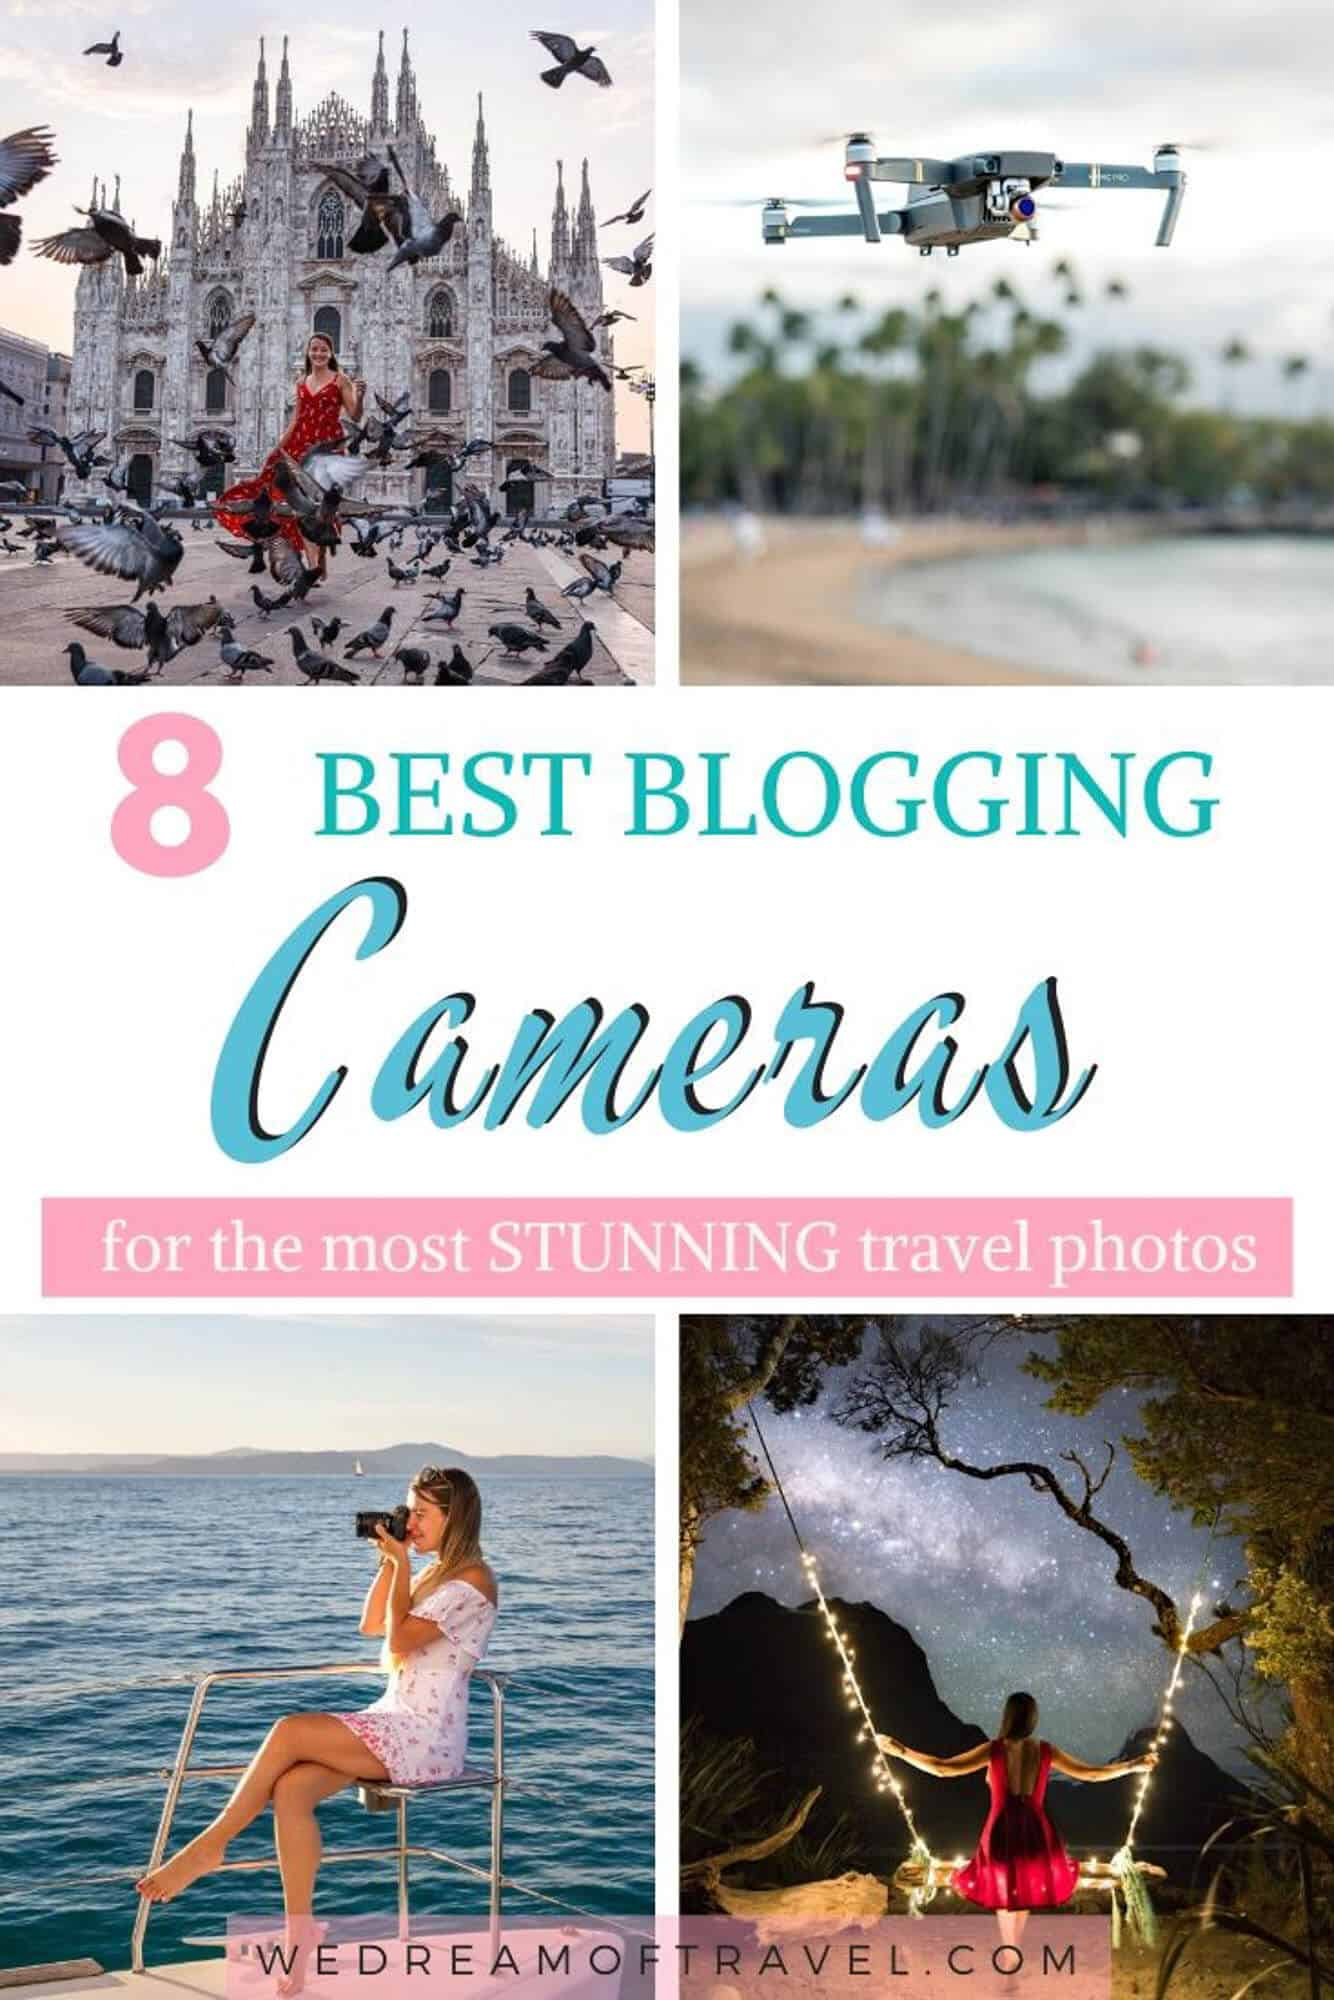 This guide will help you choose the best camera for blogging to take your photography to the next level. With cameras to suit all budgets and needs. #photography #camera #photographytips